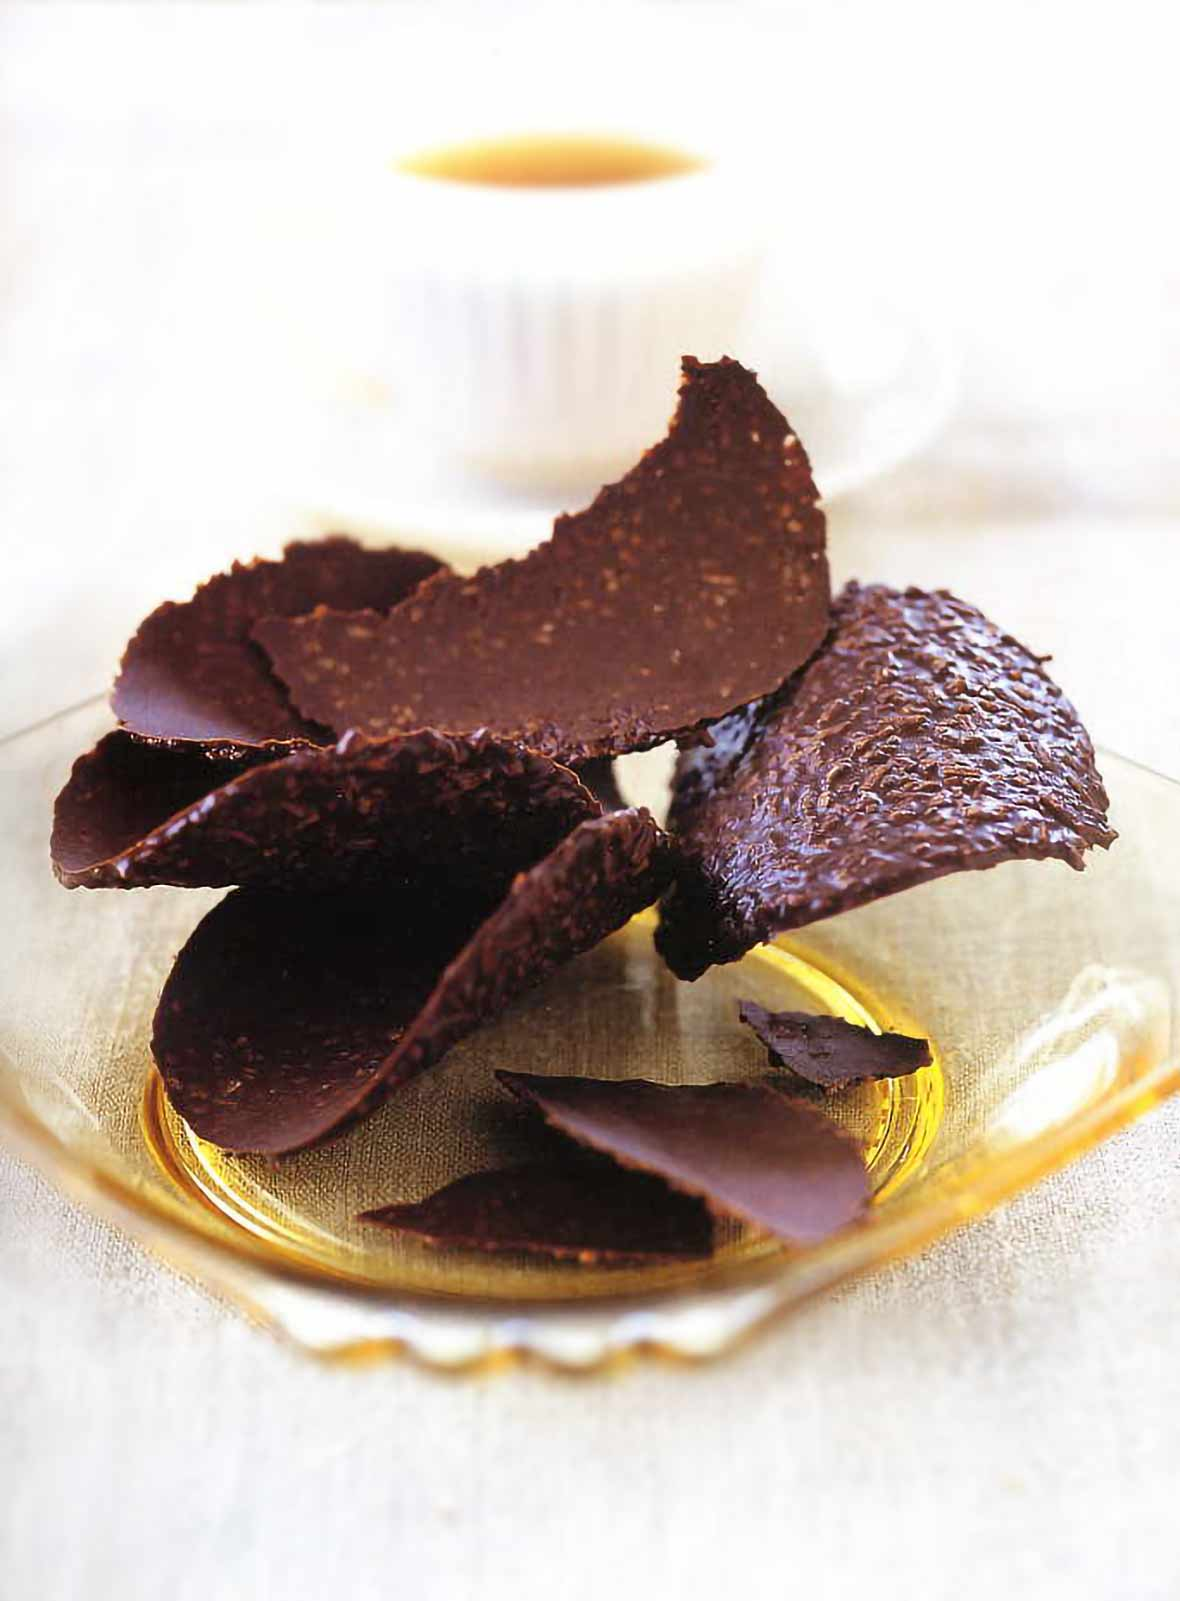 Yellow glass plate with 6 hazelnut chocolate tuiles--curved chocolate candies